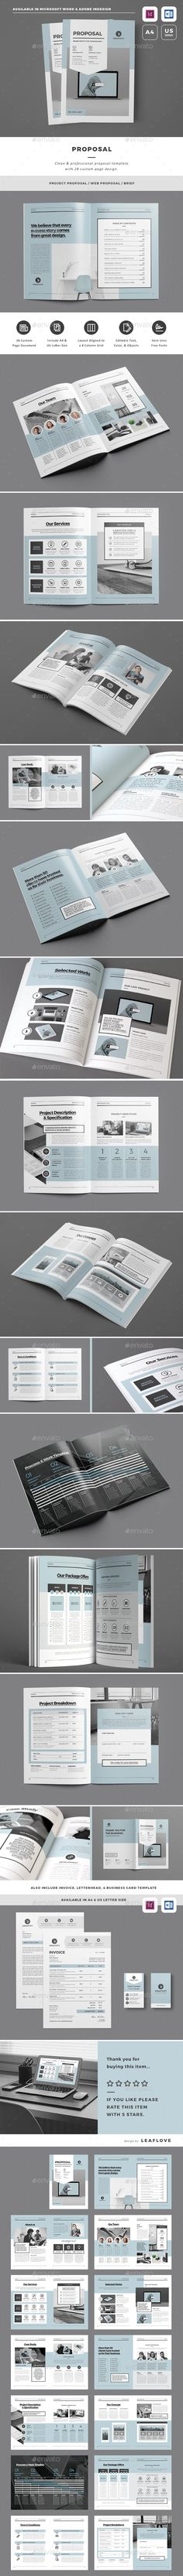 #Proposal - Proposals & #Invoices #Stationery Download here: https://graphicriver.net/item/proposal/18596028?ref=alena994